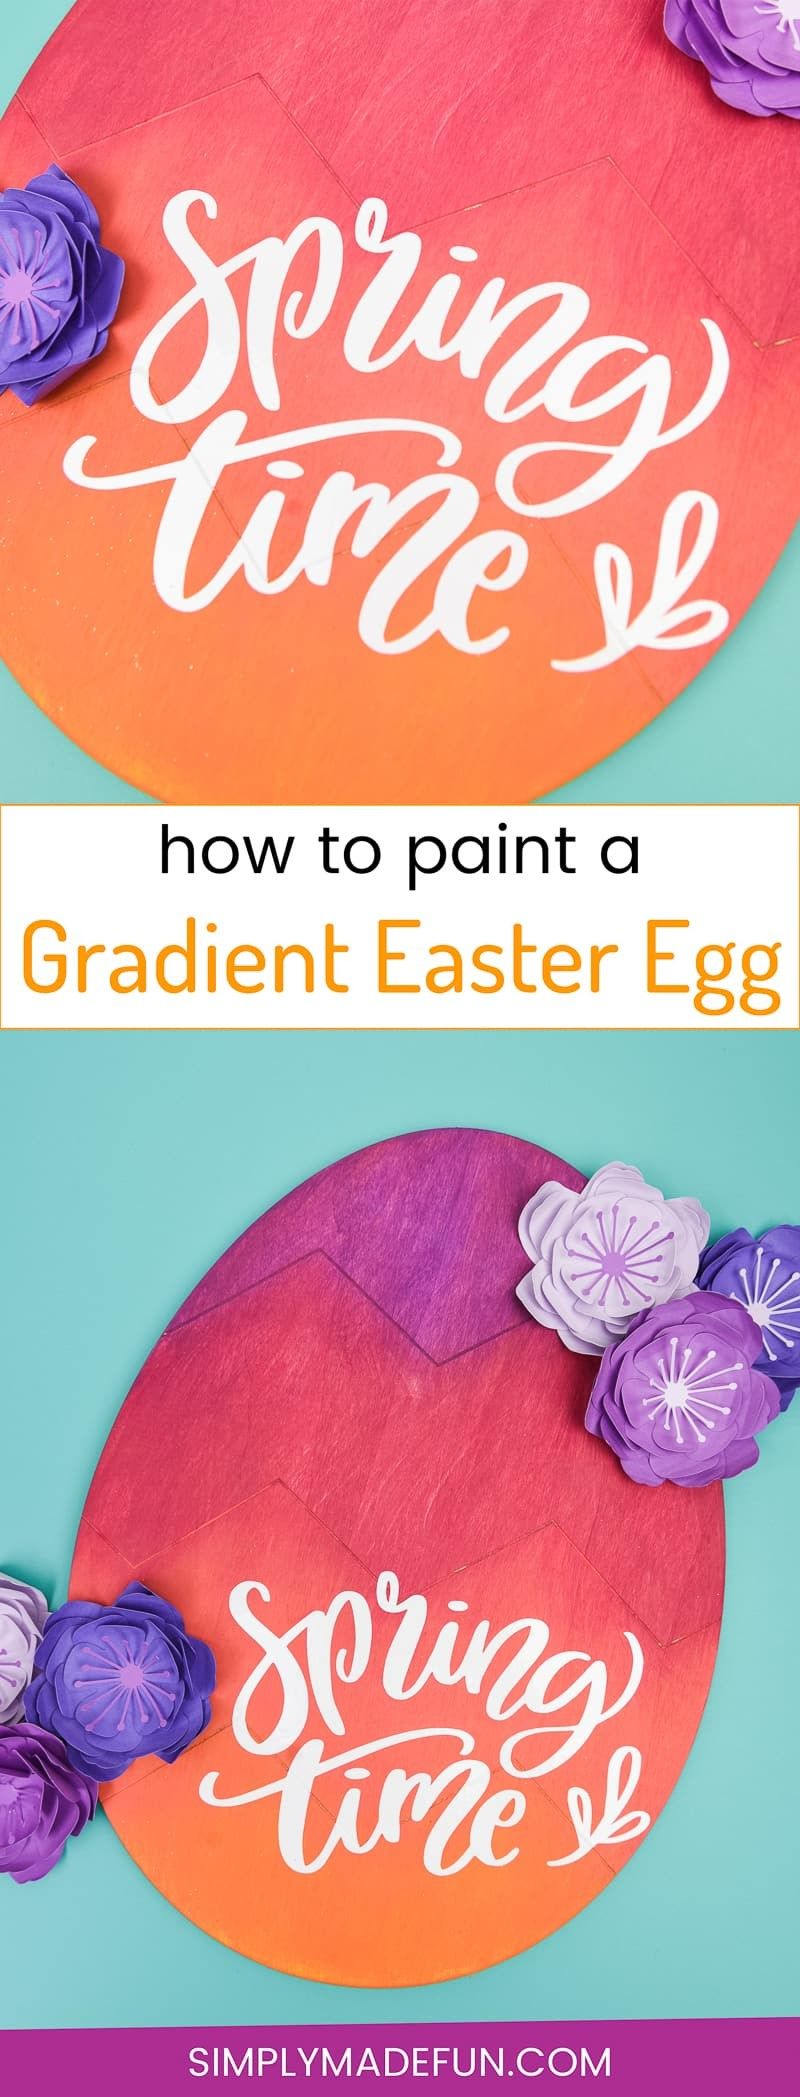 Gradient Wooden Easter Egg - This wooden Easter egg from the Target Dollar Spot is a bold and colorful DIY that is the perfect door decoration to welcome in Springtime! Use DecoArt acrylic paints to get a gorgeous gradient look and your Silhouette Cameo to cut out a vinyl phrase!